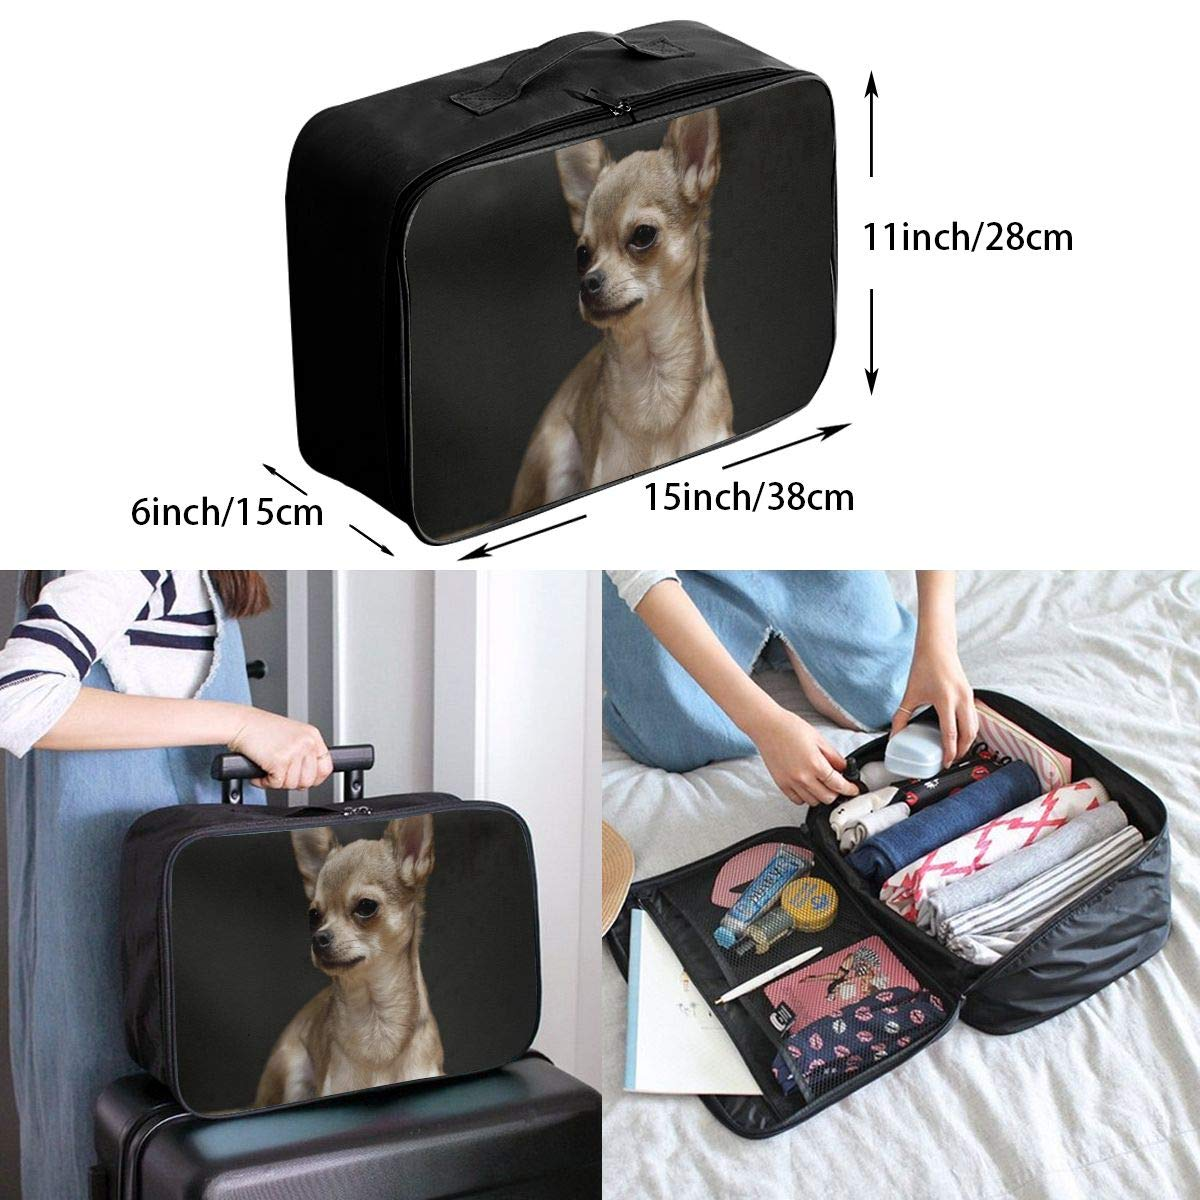 Lightweight Large Capacity Portable Luggage Bag Chihuahua Dogs Cute Pet Travel Waterproof Foldable Storage Carry Tote Bag